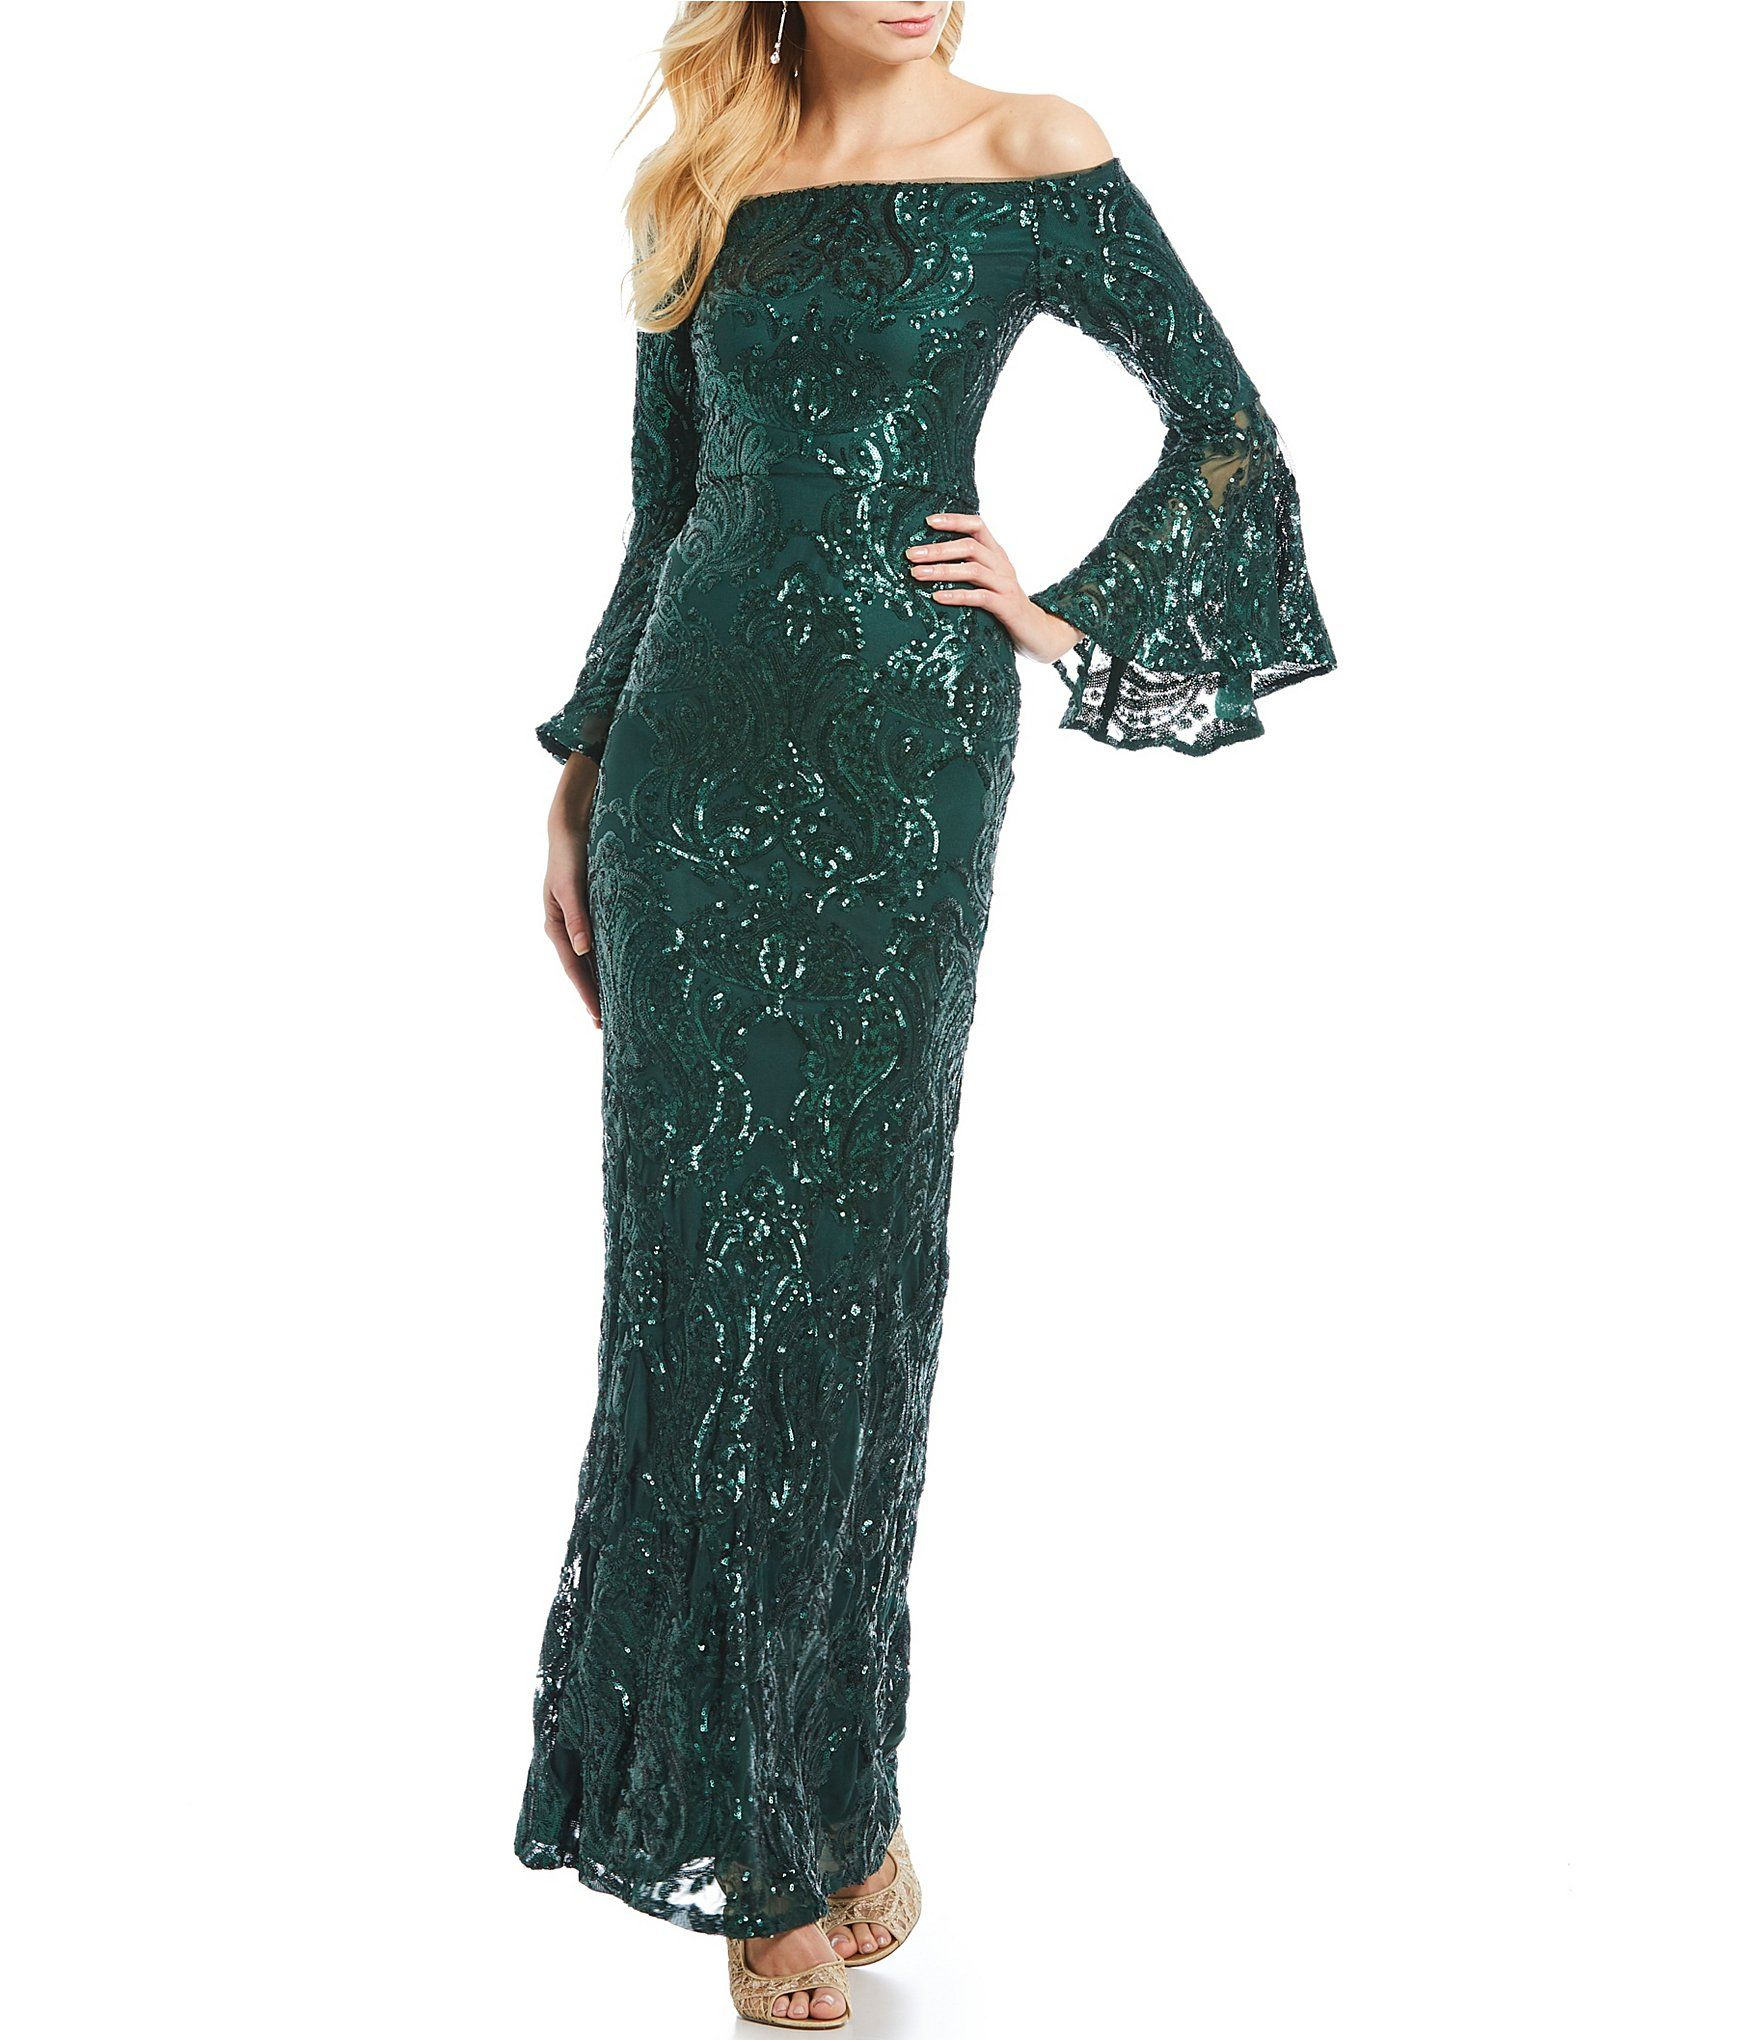 c1e4f04e76 Shop for Betsy   Adam Sequined Off-the-Shoulder Flutter Sleeve Sequined Gown  at Dillards.com. Visit Dillards.com to find clothing